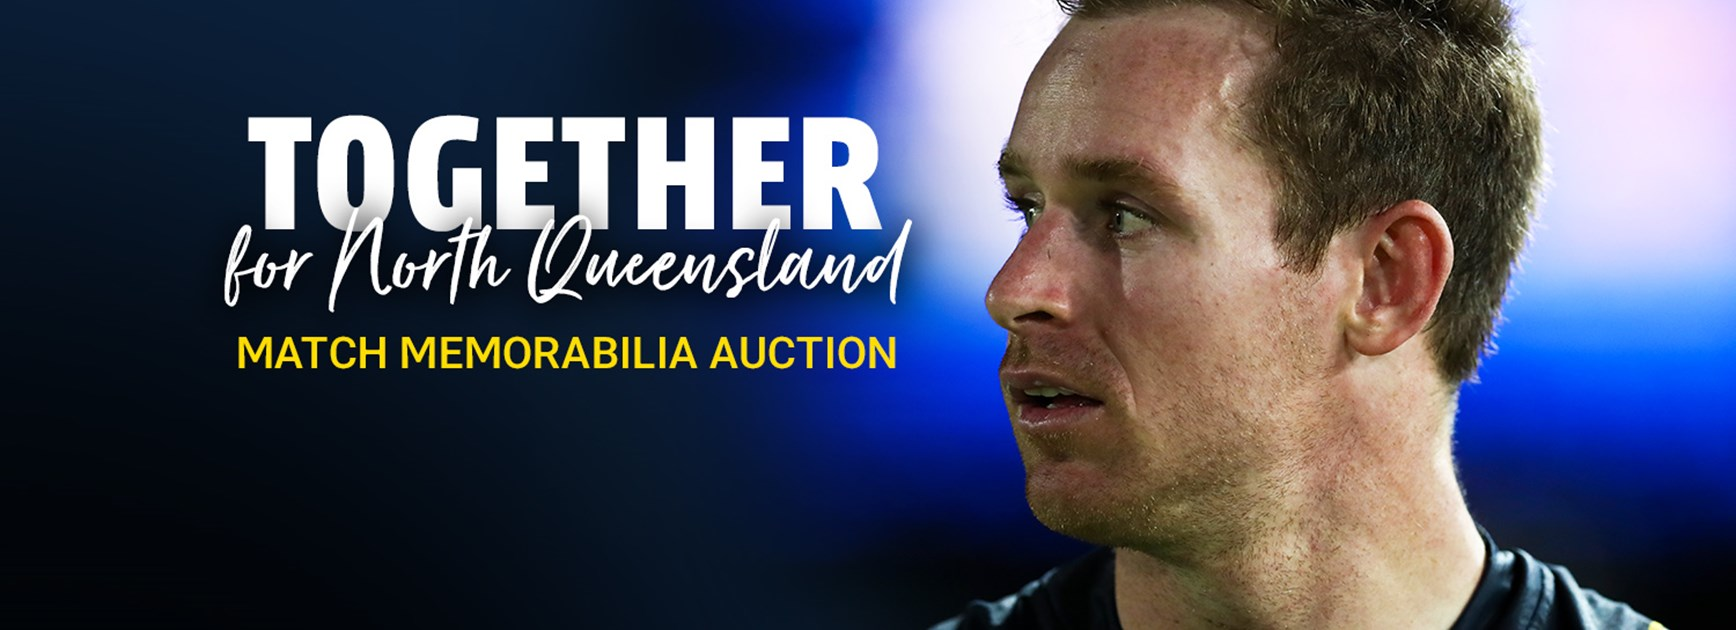 Match memorabilia auction raising flood funds